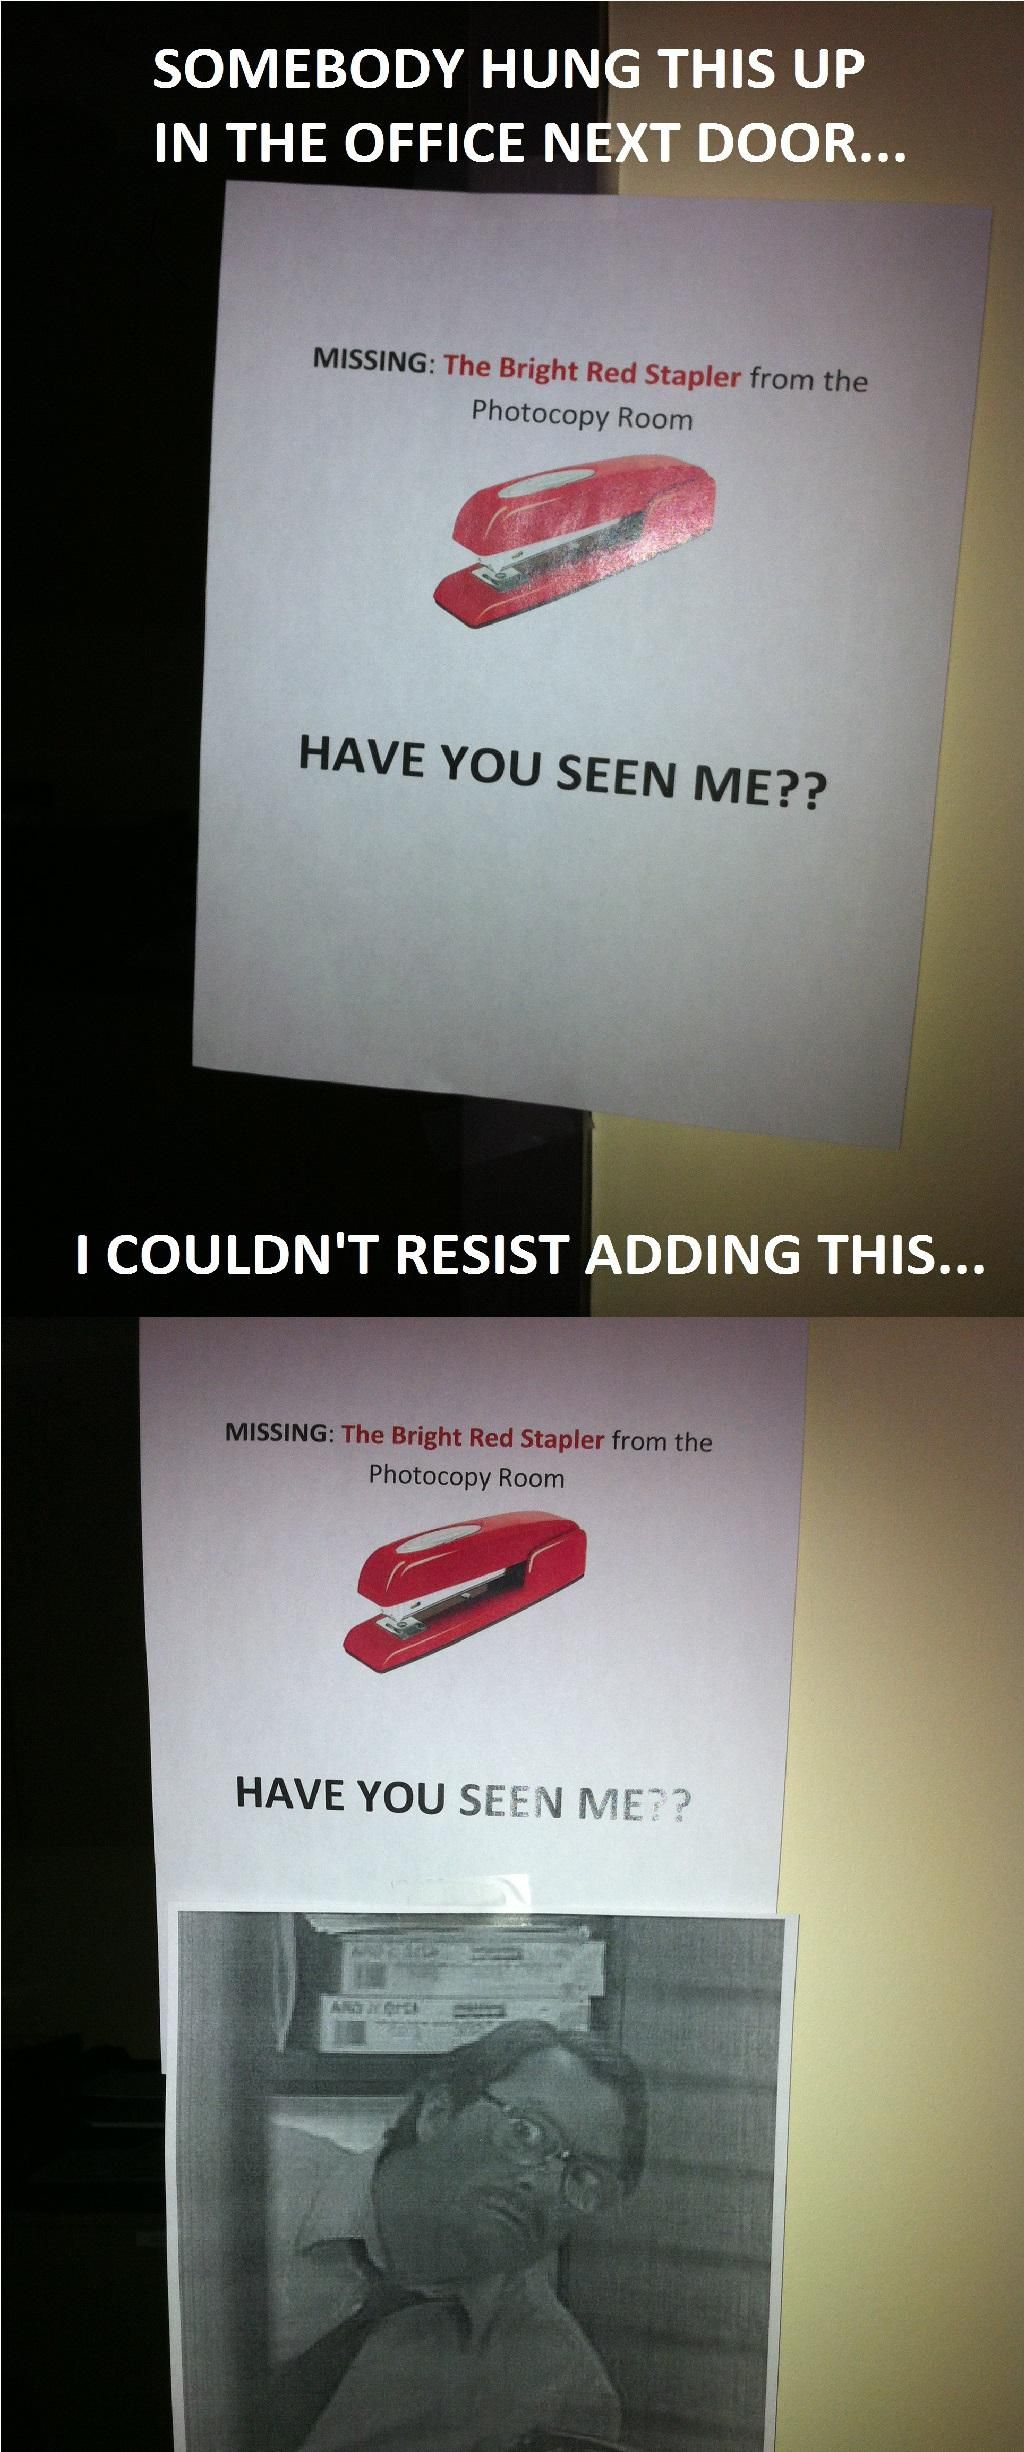 I believe you have my stapler...